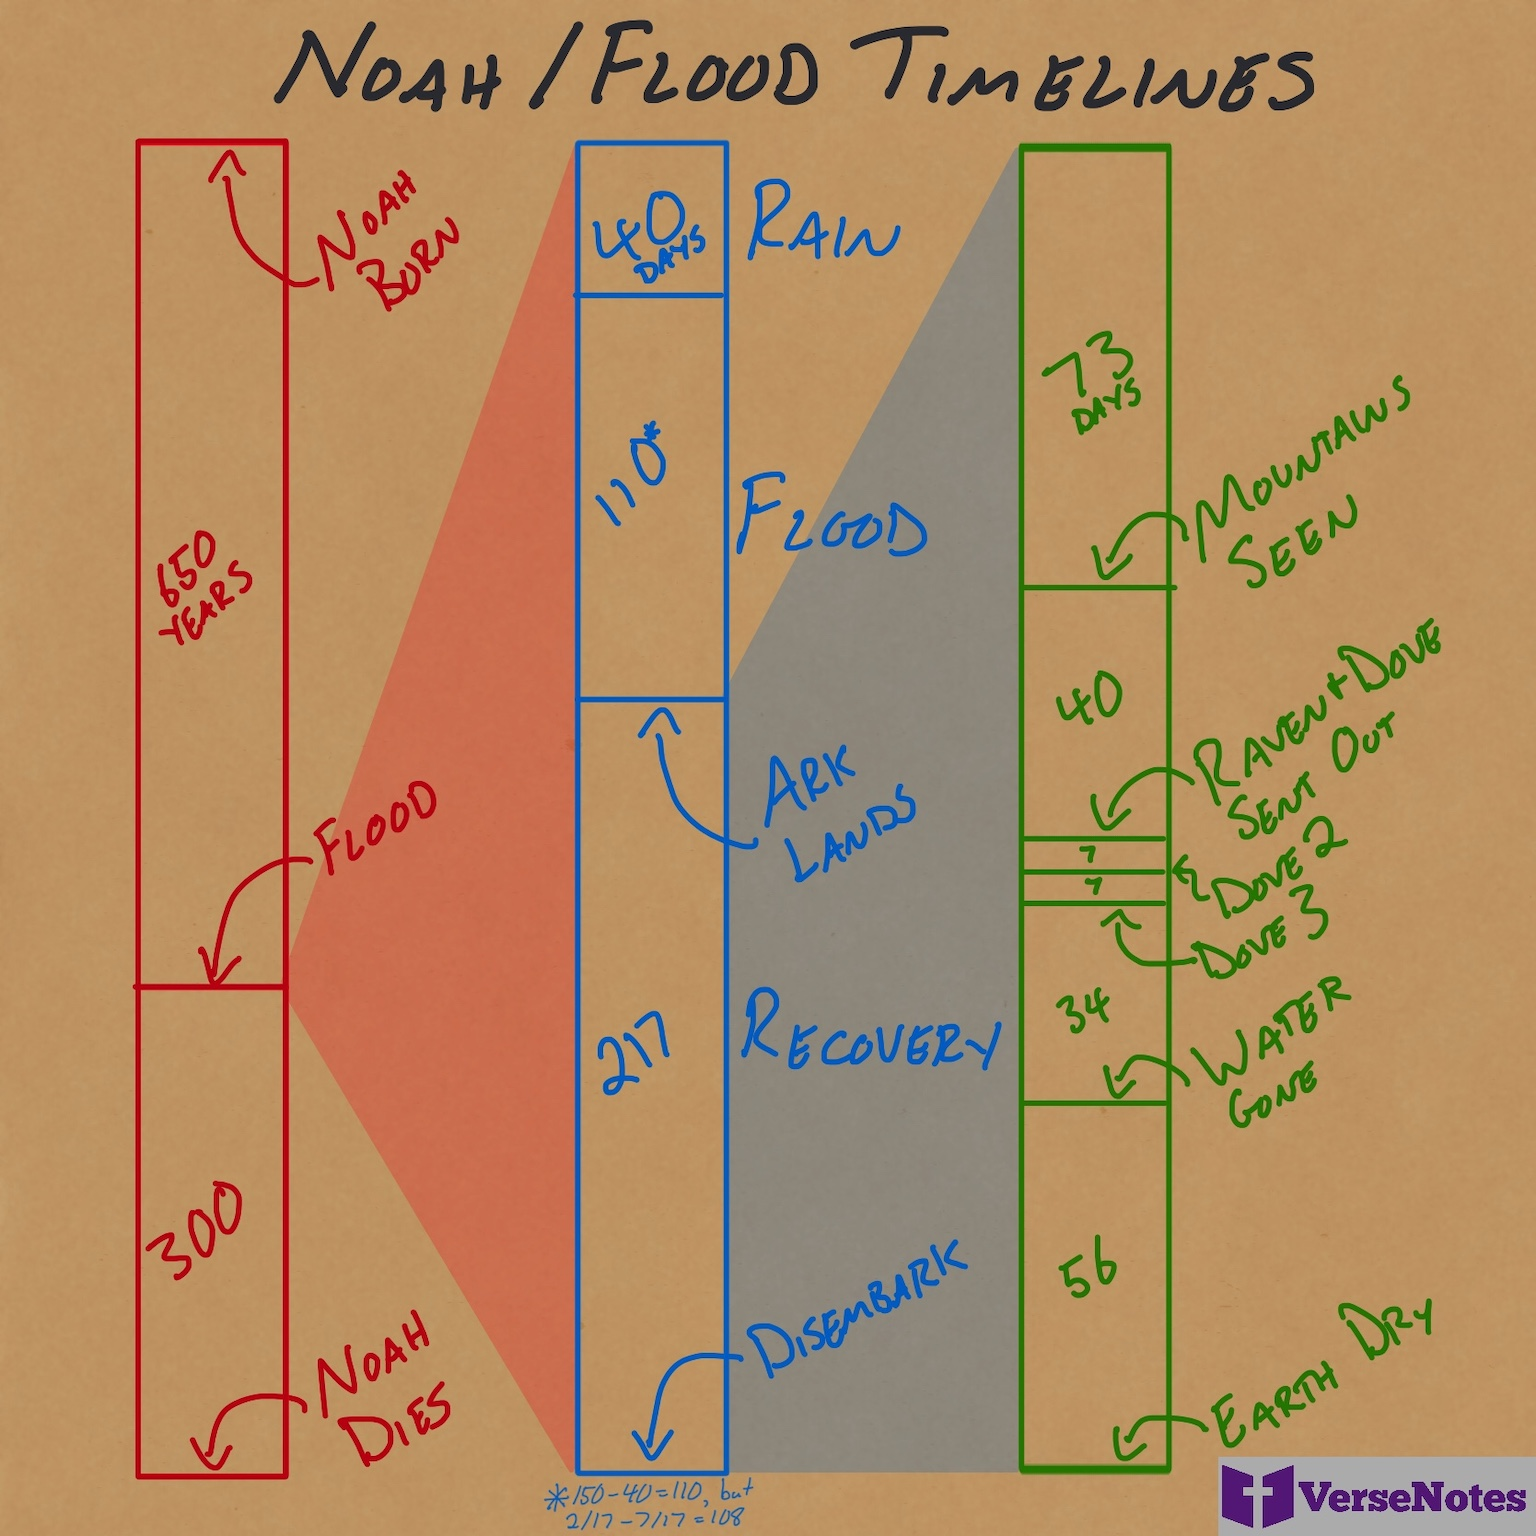 Timeline of Noah's life and the flood.